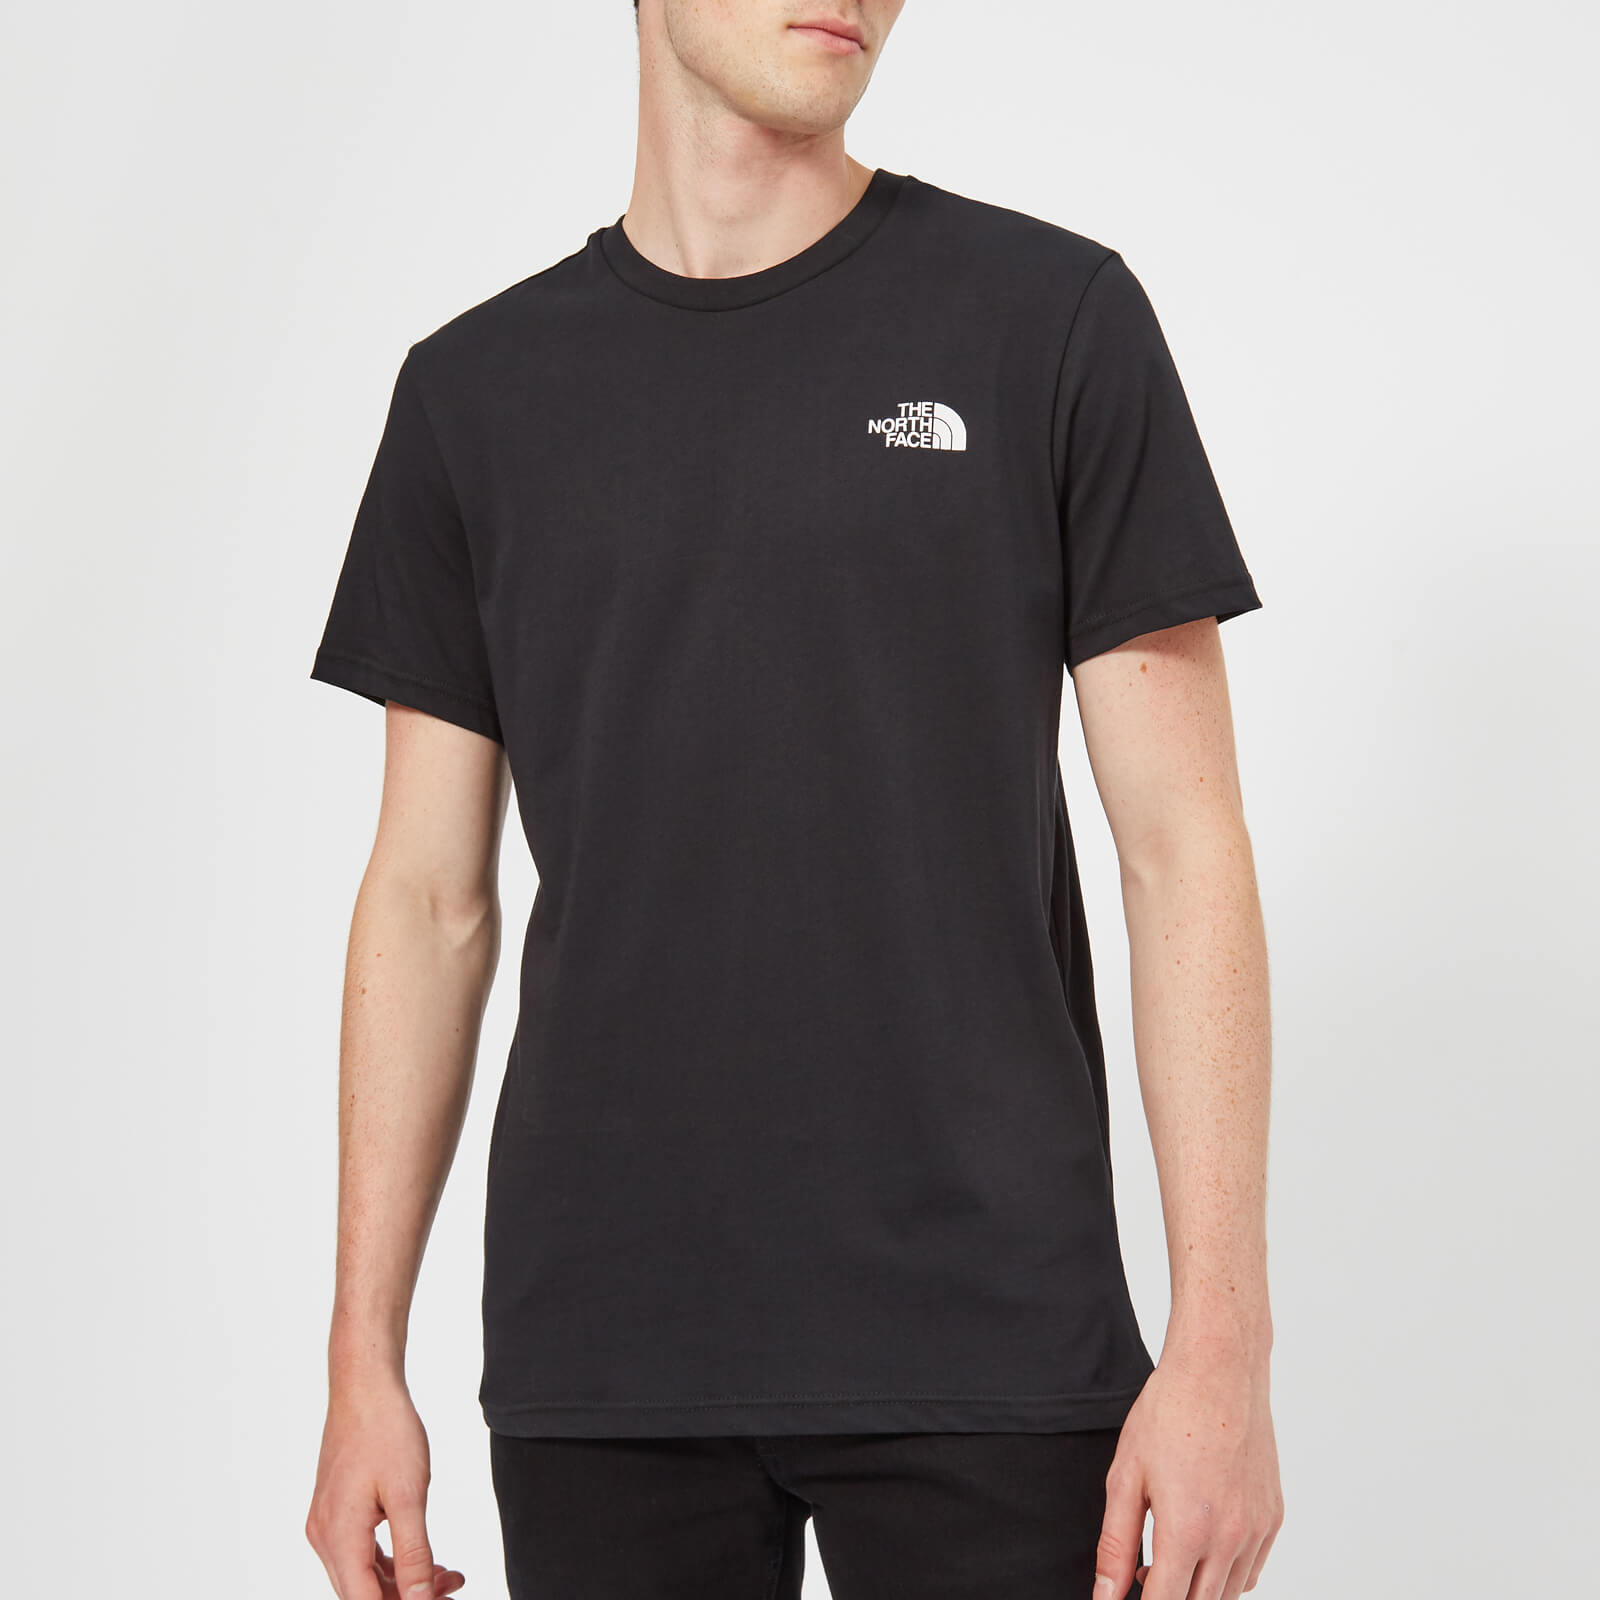 6b82a83be The North Face Men's Short Sleeve Simple Dome T-Shirt - TNF Black